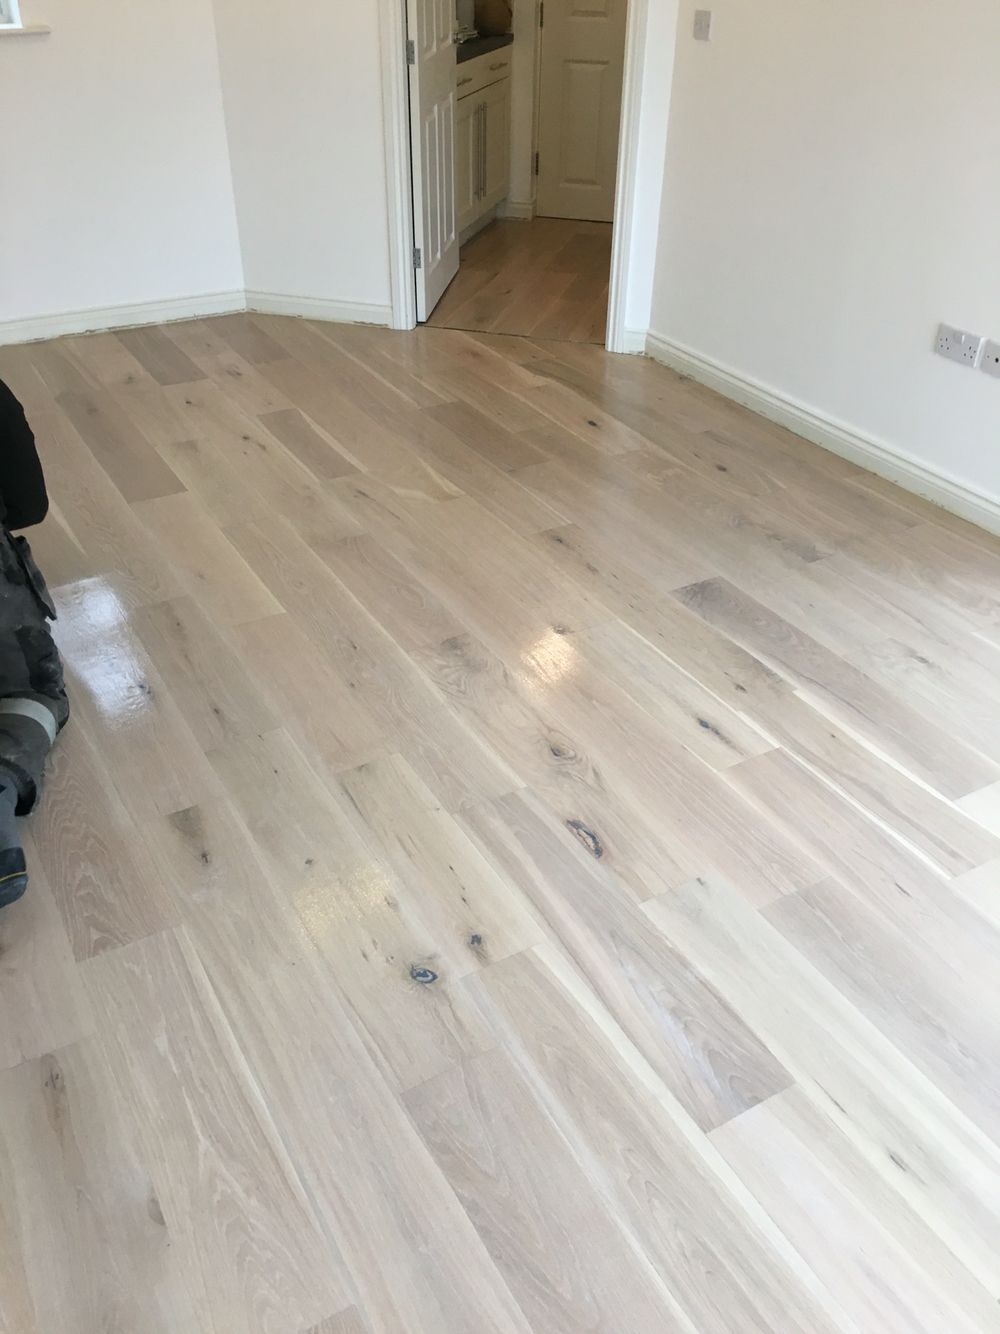 Great methods to use for refinishing hardwood floors floor great methods to use for refinishing hardwood floors dailygadgetfo Image collections